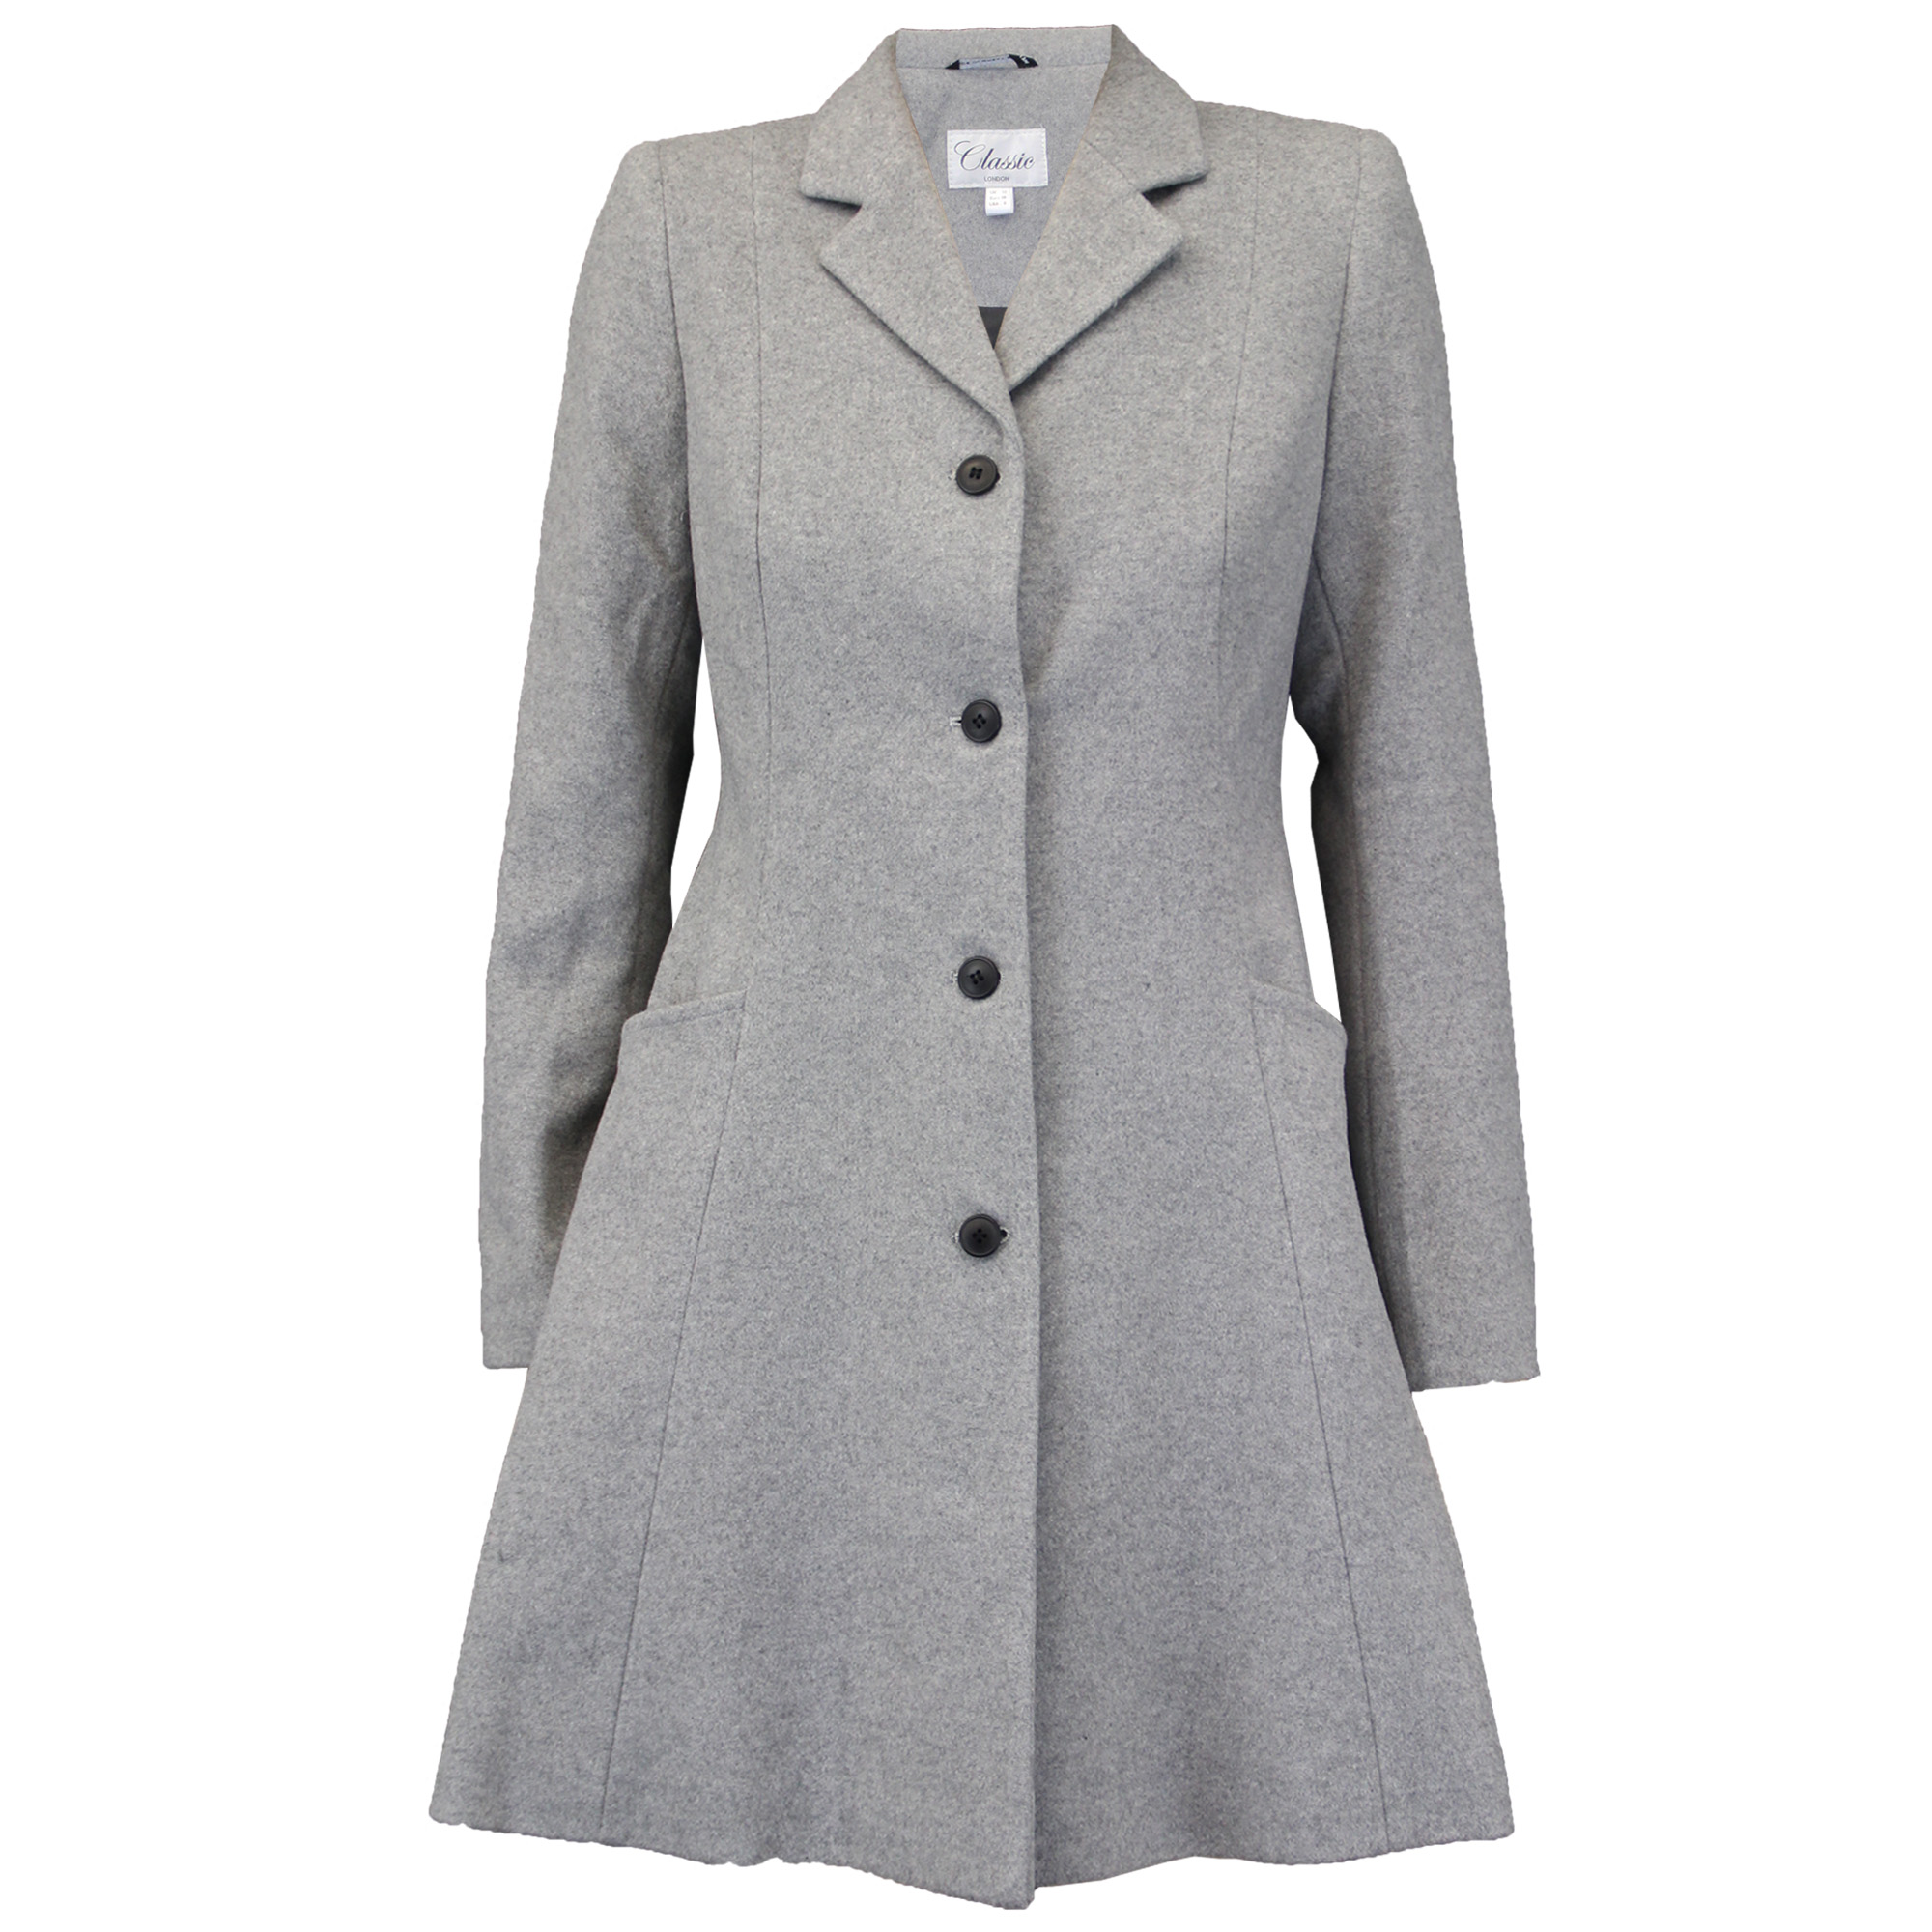 Frock coats for women